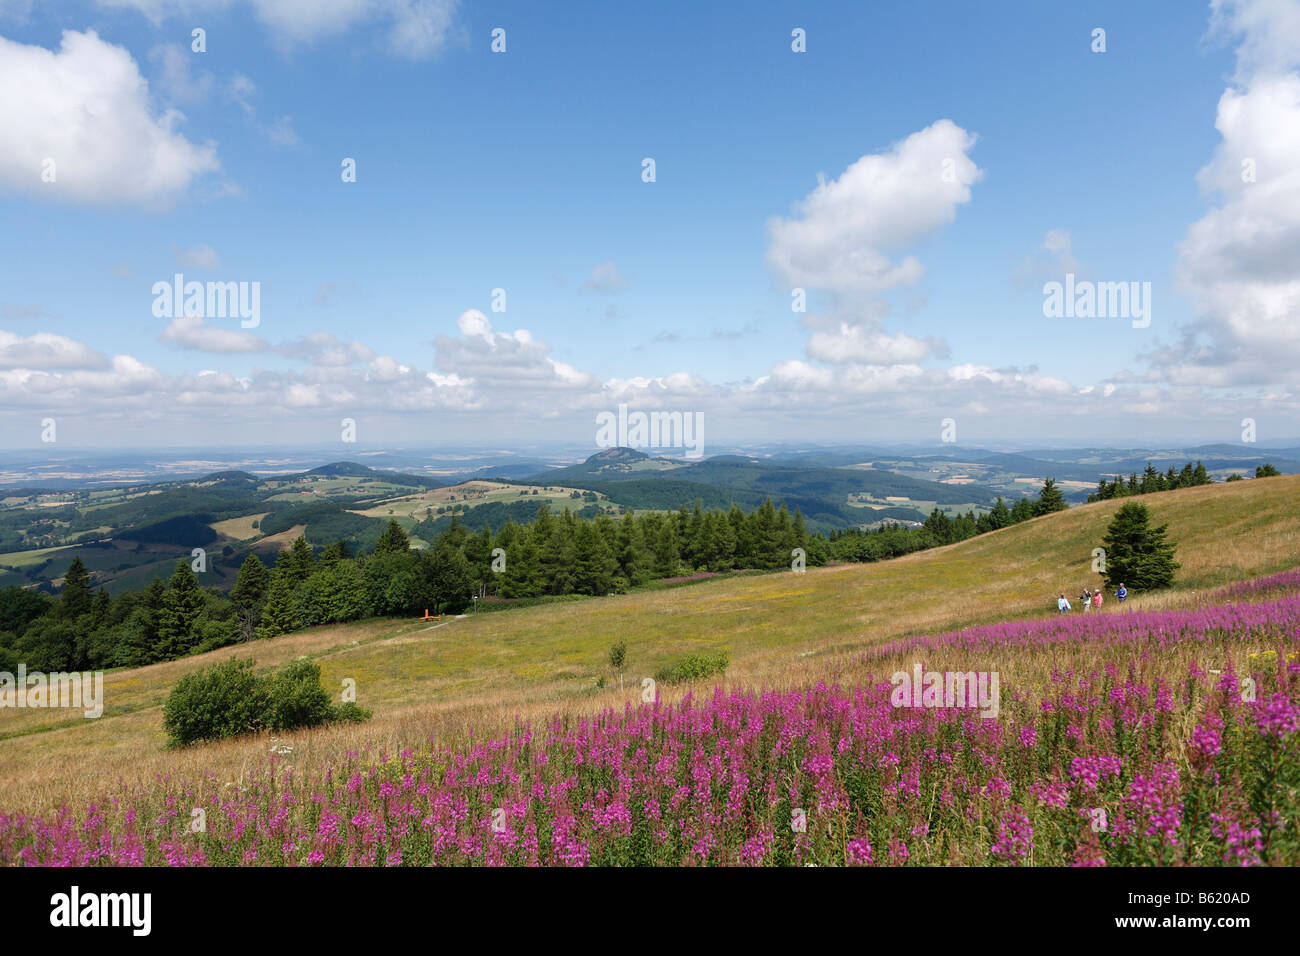 View from the Wasserkuppe plateau, lookin northwest, with the pink blossoms of Fireweed or Rosebay Willowherb (Epilobium Stock Photo